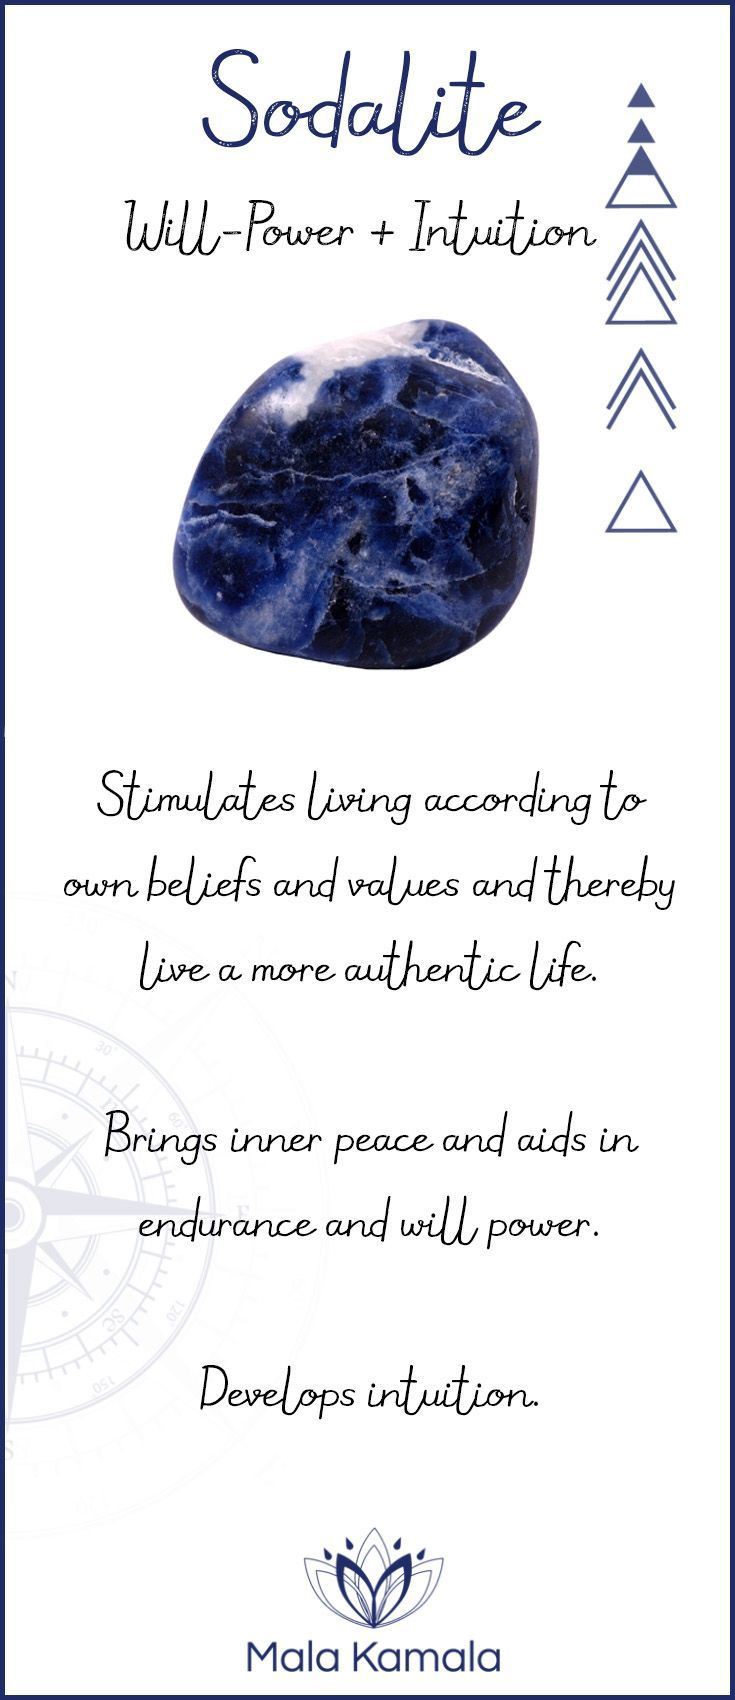 What is the meaning and crystal and chakra healing properties of sodalite? A stone for will-power, determination and intuition. Has some properties similar to lapis lazuli.